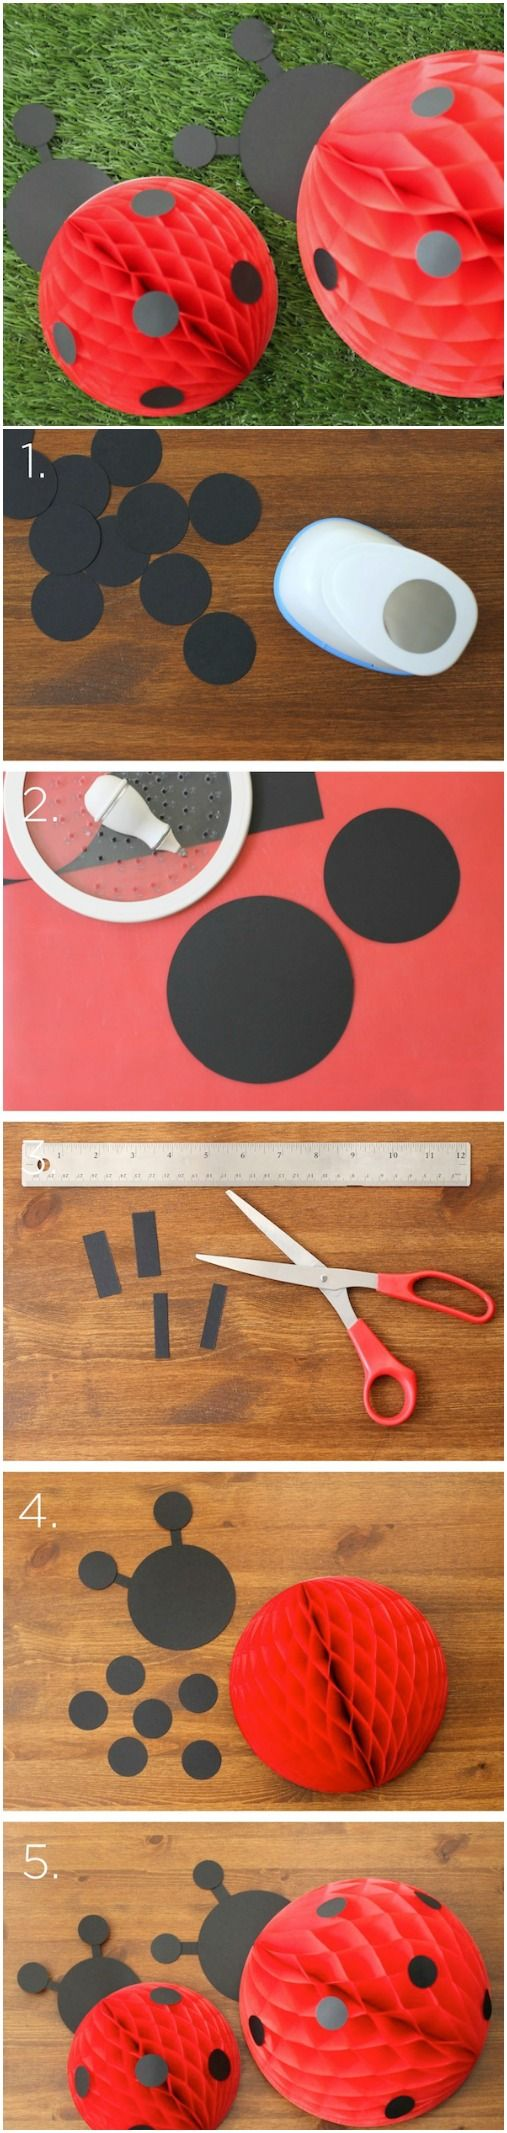 Tear fall colored construction paper into small pieces and glue - Materials 1 Circle Punch Circle Cutter Scissors Black Construction Paper 12 Red Honeycomb